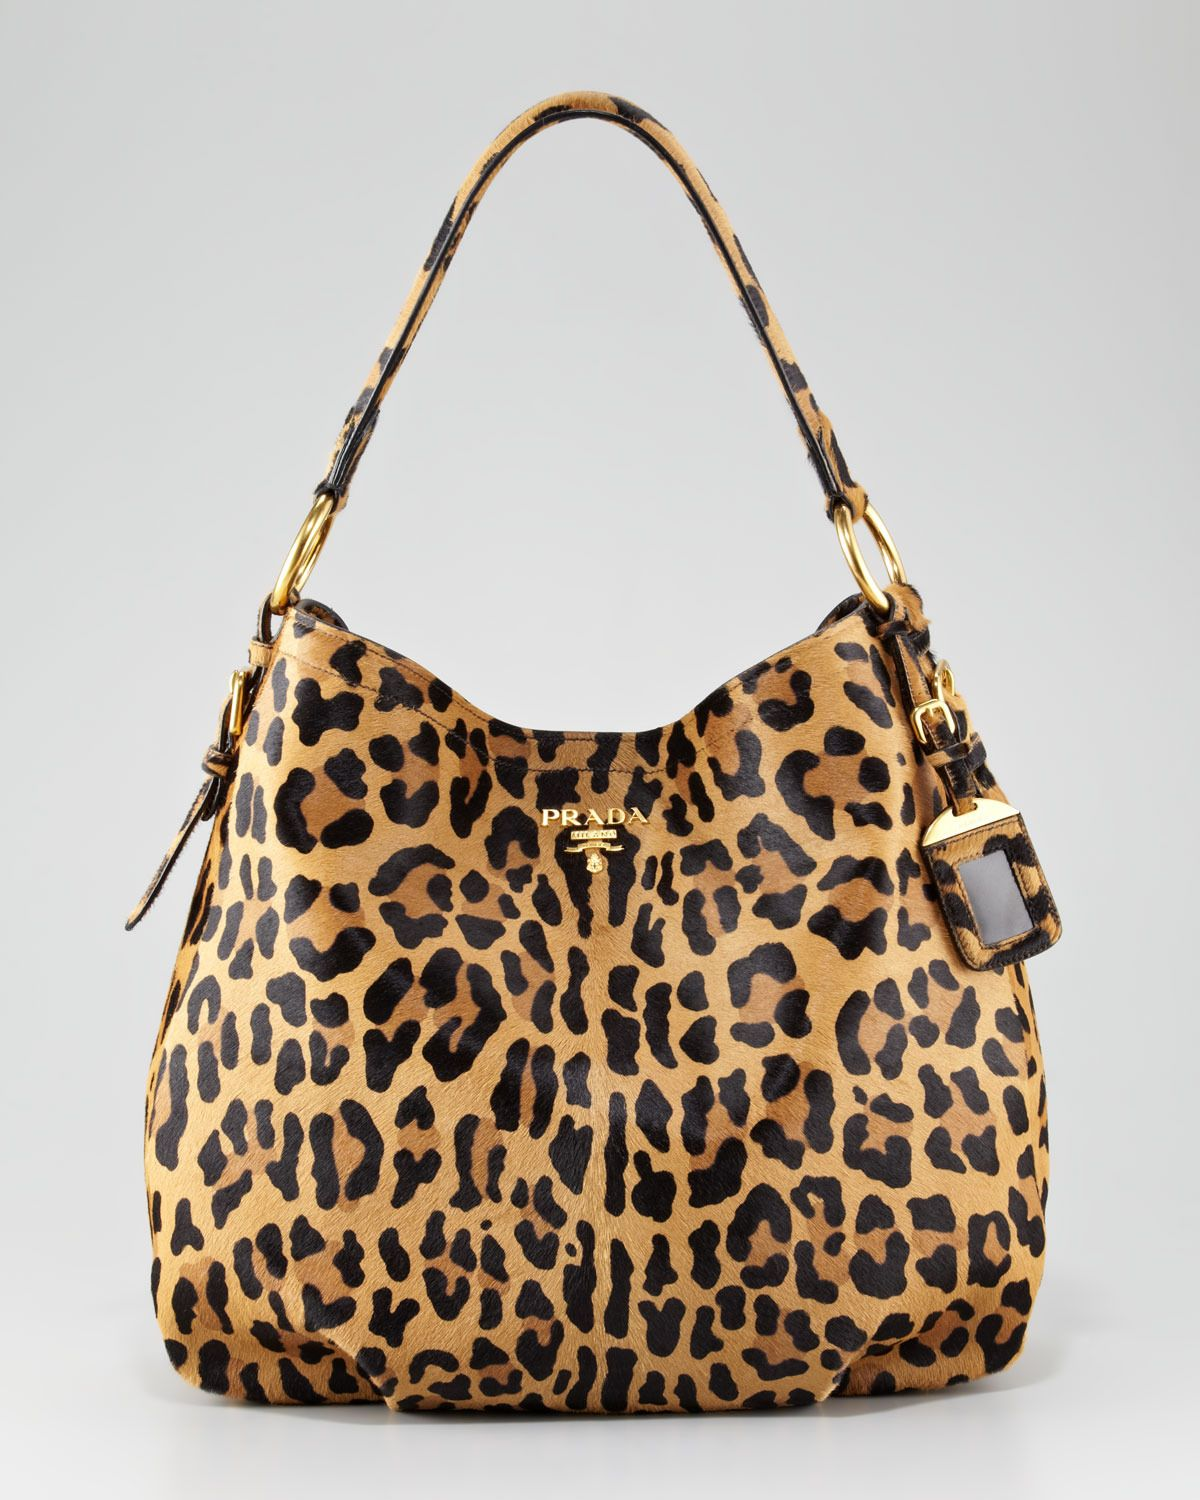 55c733d627ed ... discount code for cavallino hobo bag prada do your bags purr tote  shoulder hobos leopard calf